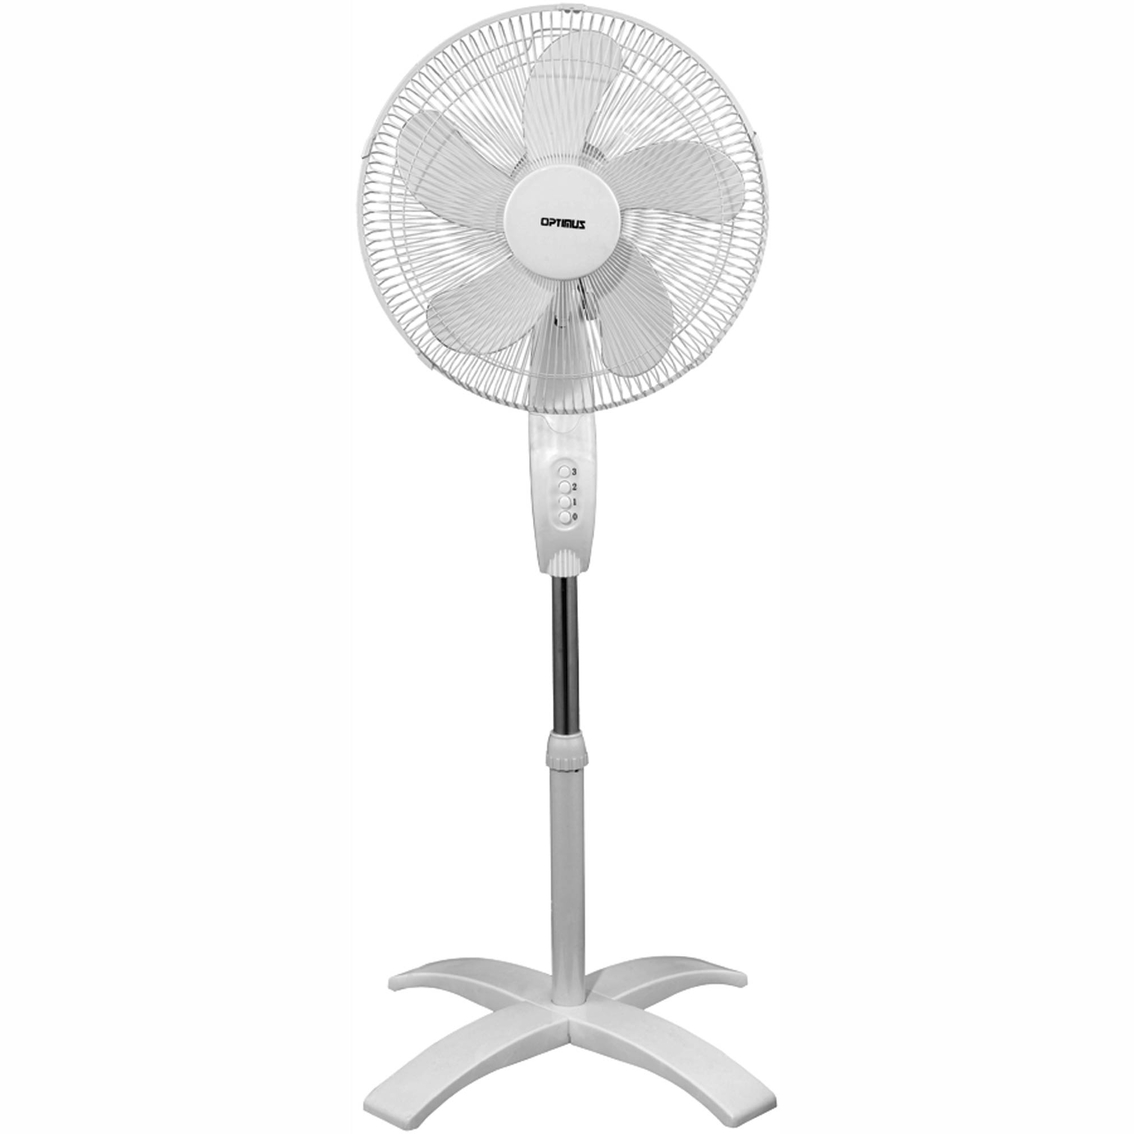 Standing Fans Walmart : Optimus in wave oscillating stand fan portable fans